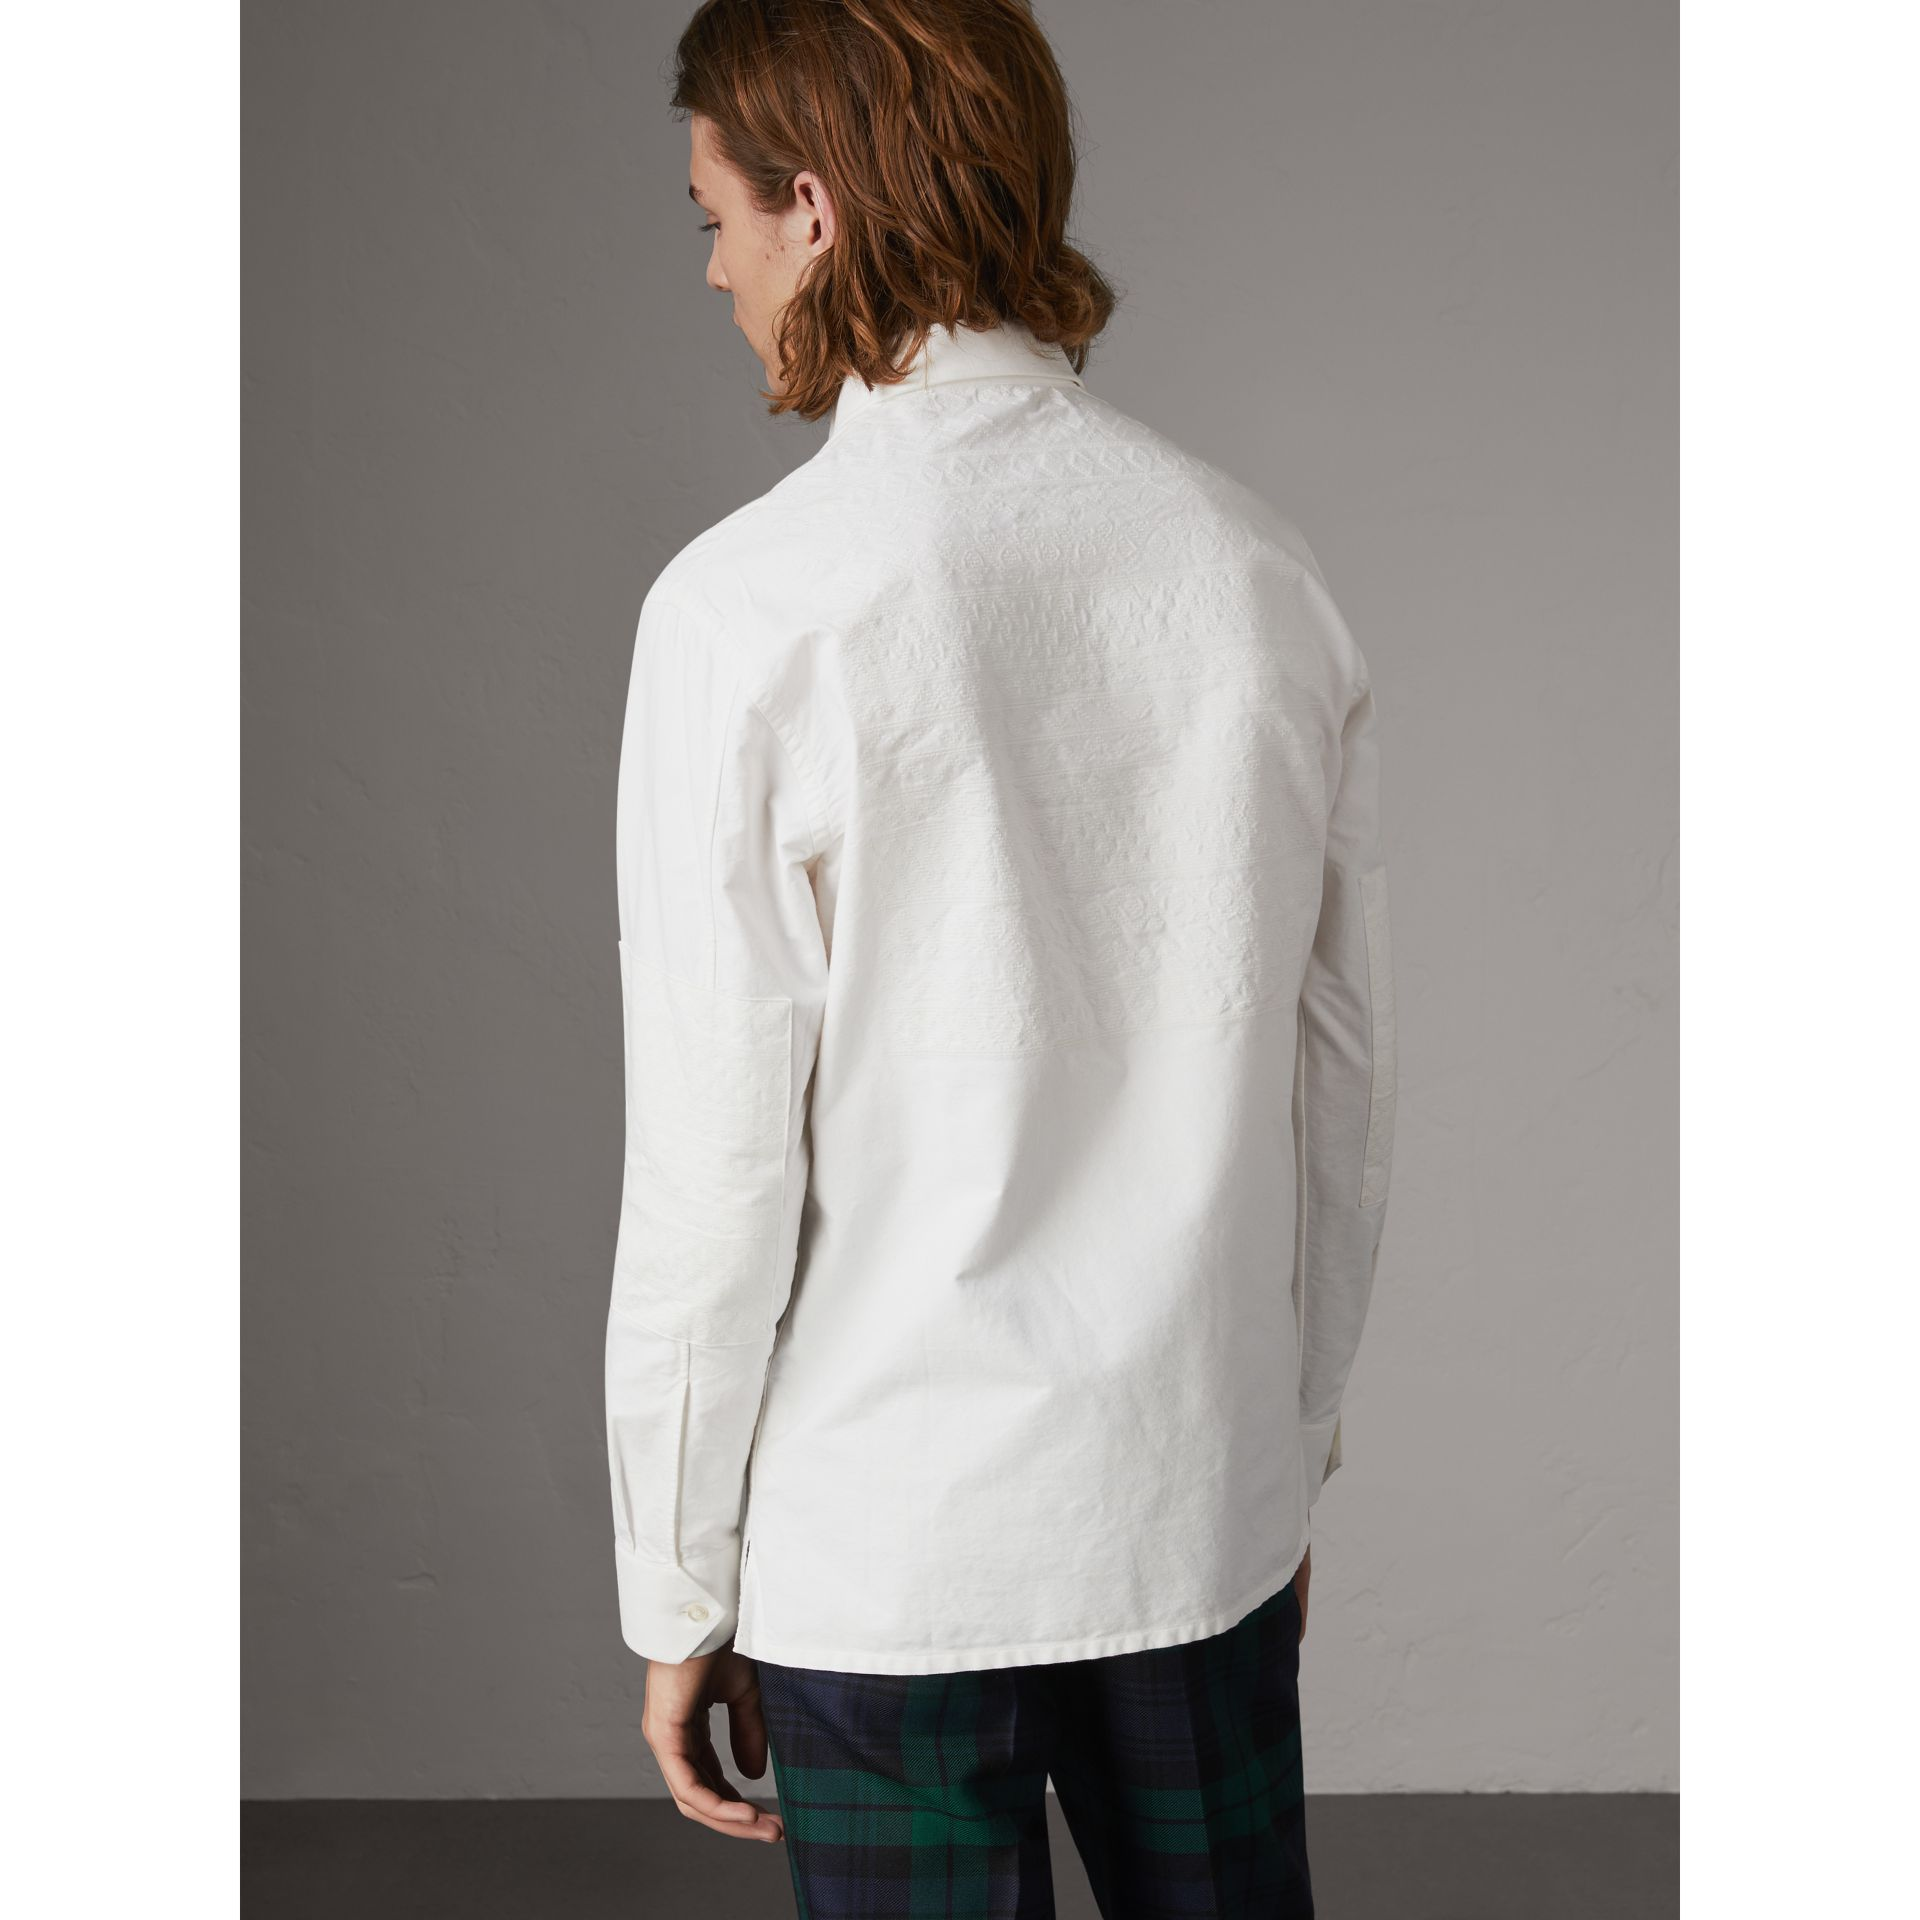 Embroidered Oxford Cotton Longline Shirt in White - Men | Burberry Canada - gallery image 2